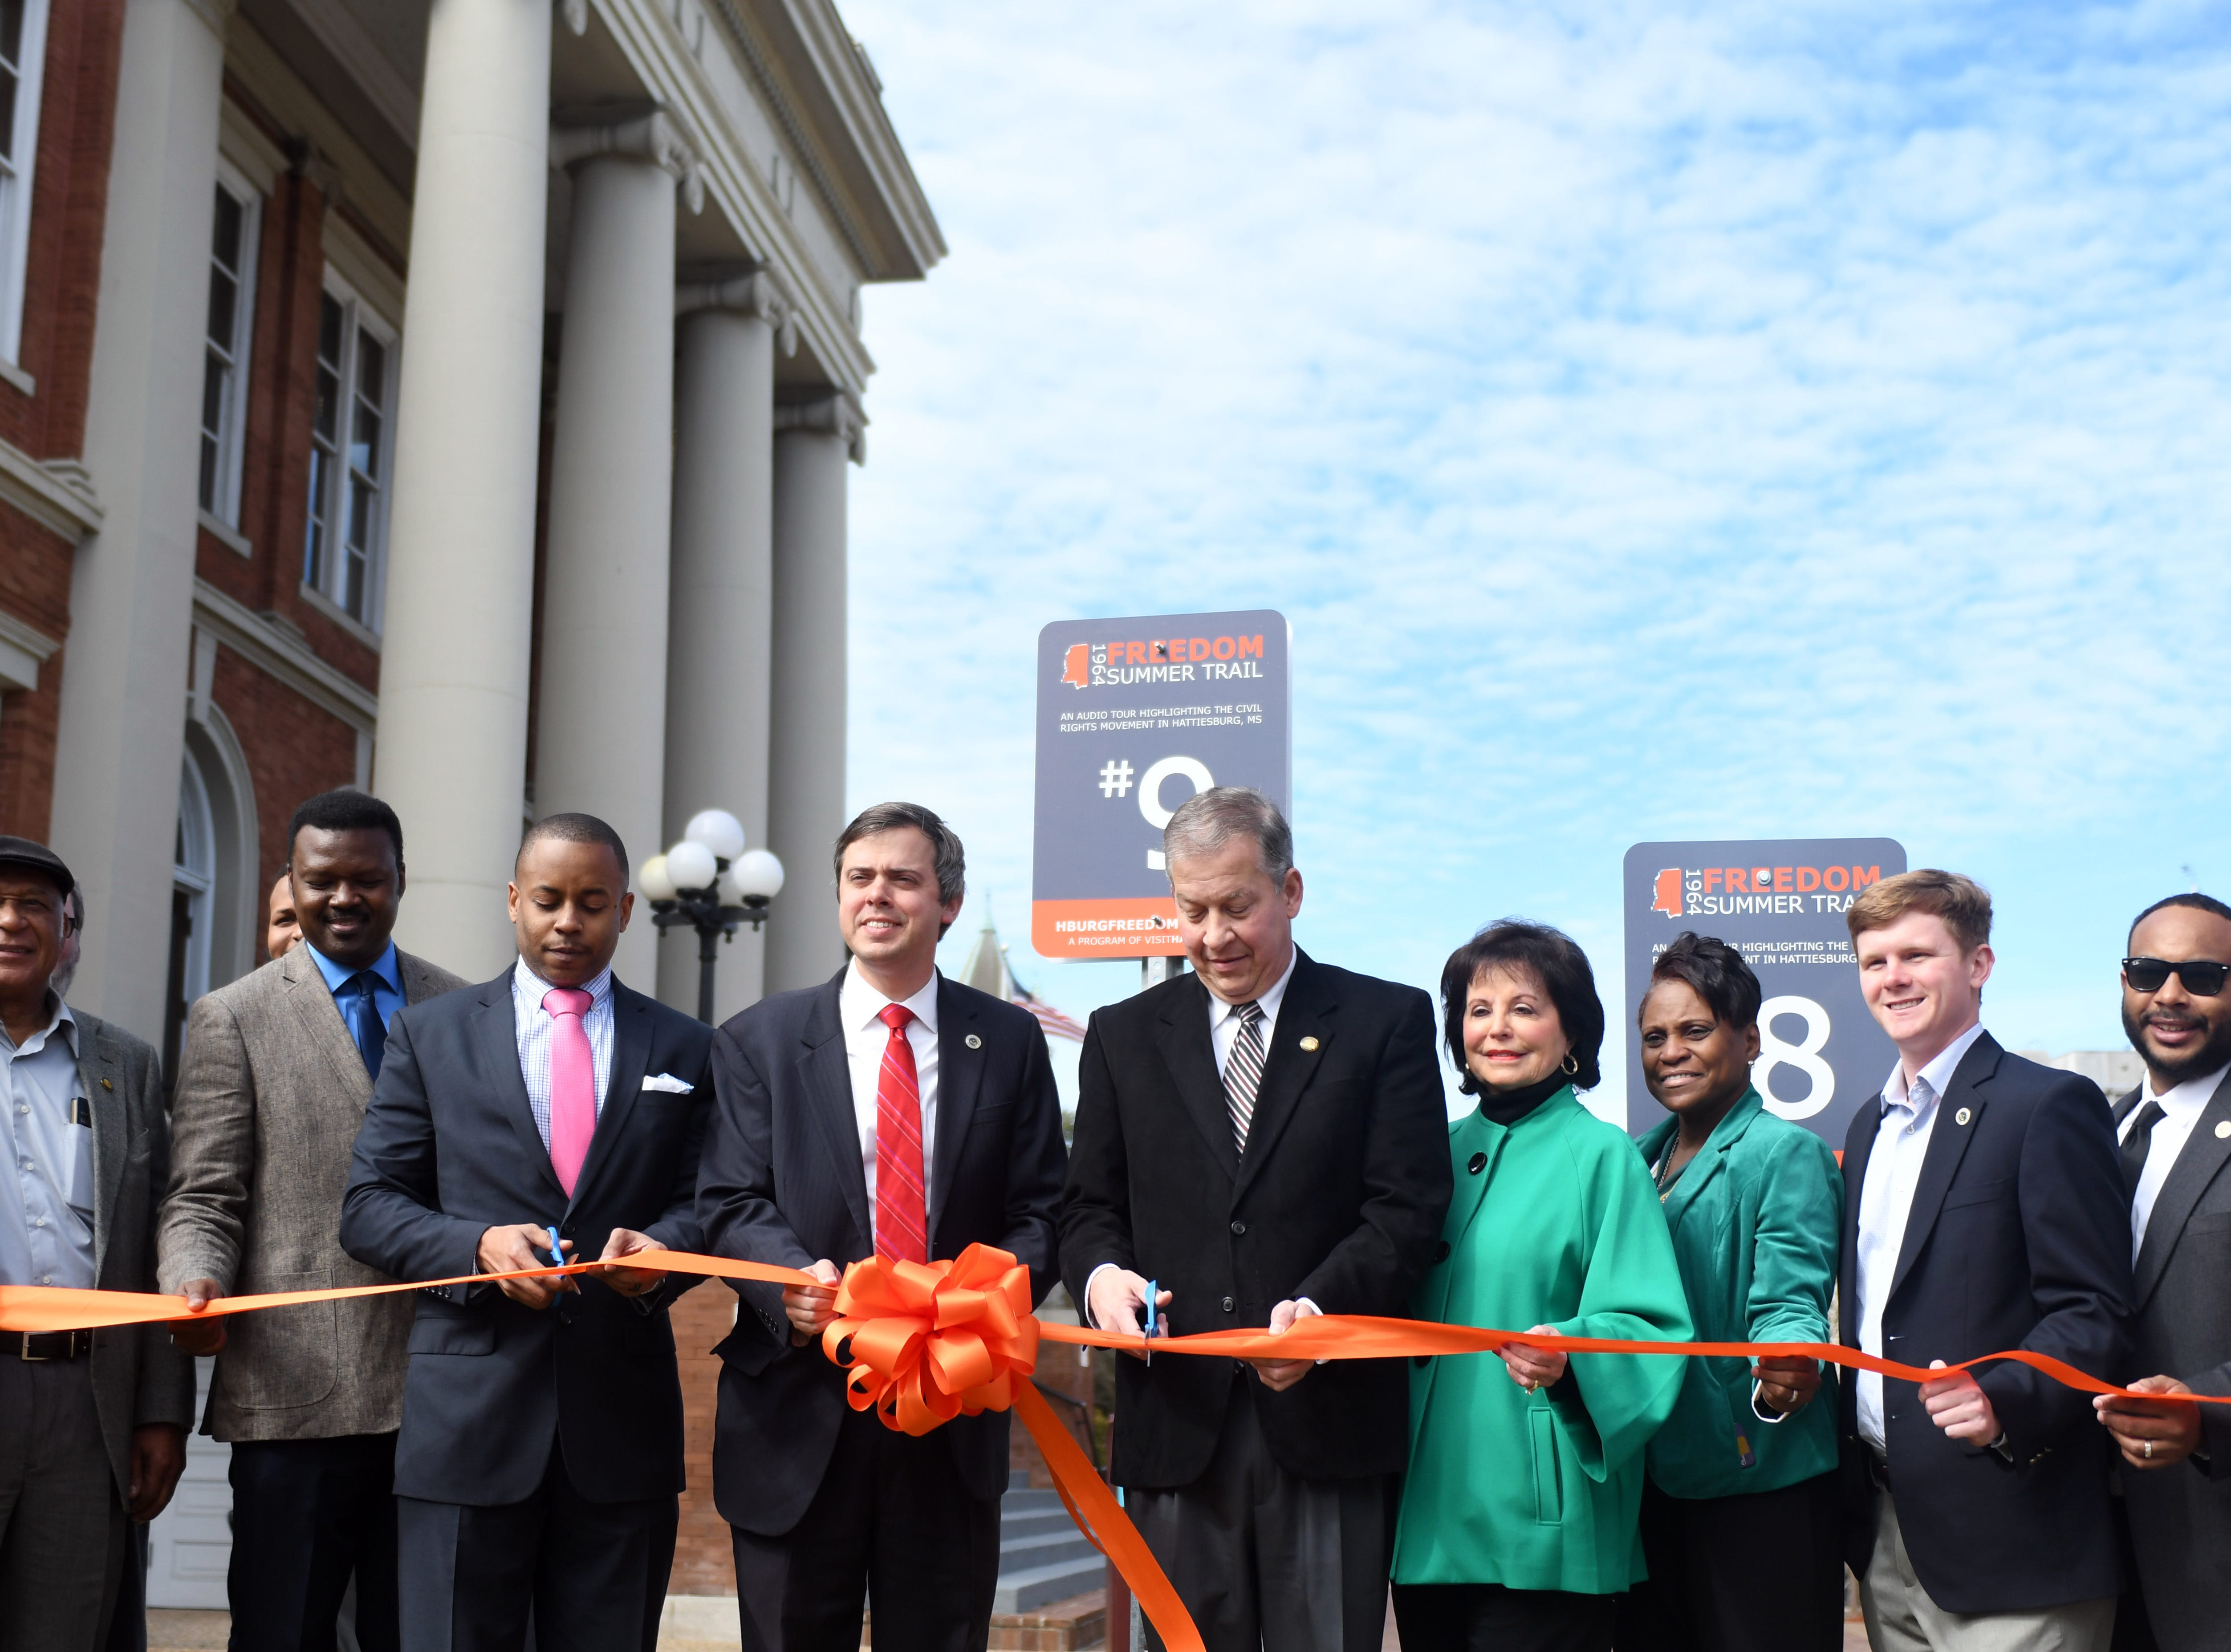 VisitHattiesburg and Hattiesburg officials cut a ribbon for some of the new markers for the 1964 Freedom Summer Trail driving and audio tour around Hattiesburg. There will be 16 stops in Hattiesburg where guest can visit and listen to the history of the Freedom Summer Trail.